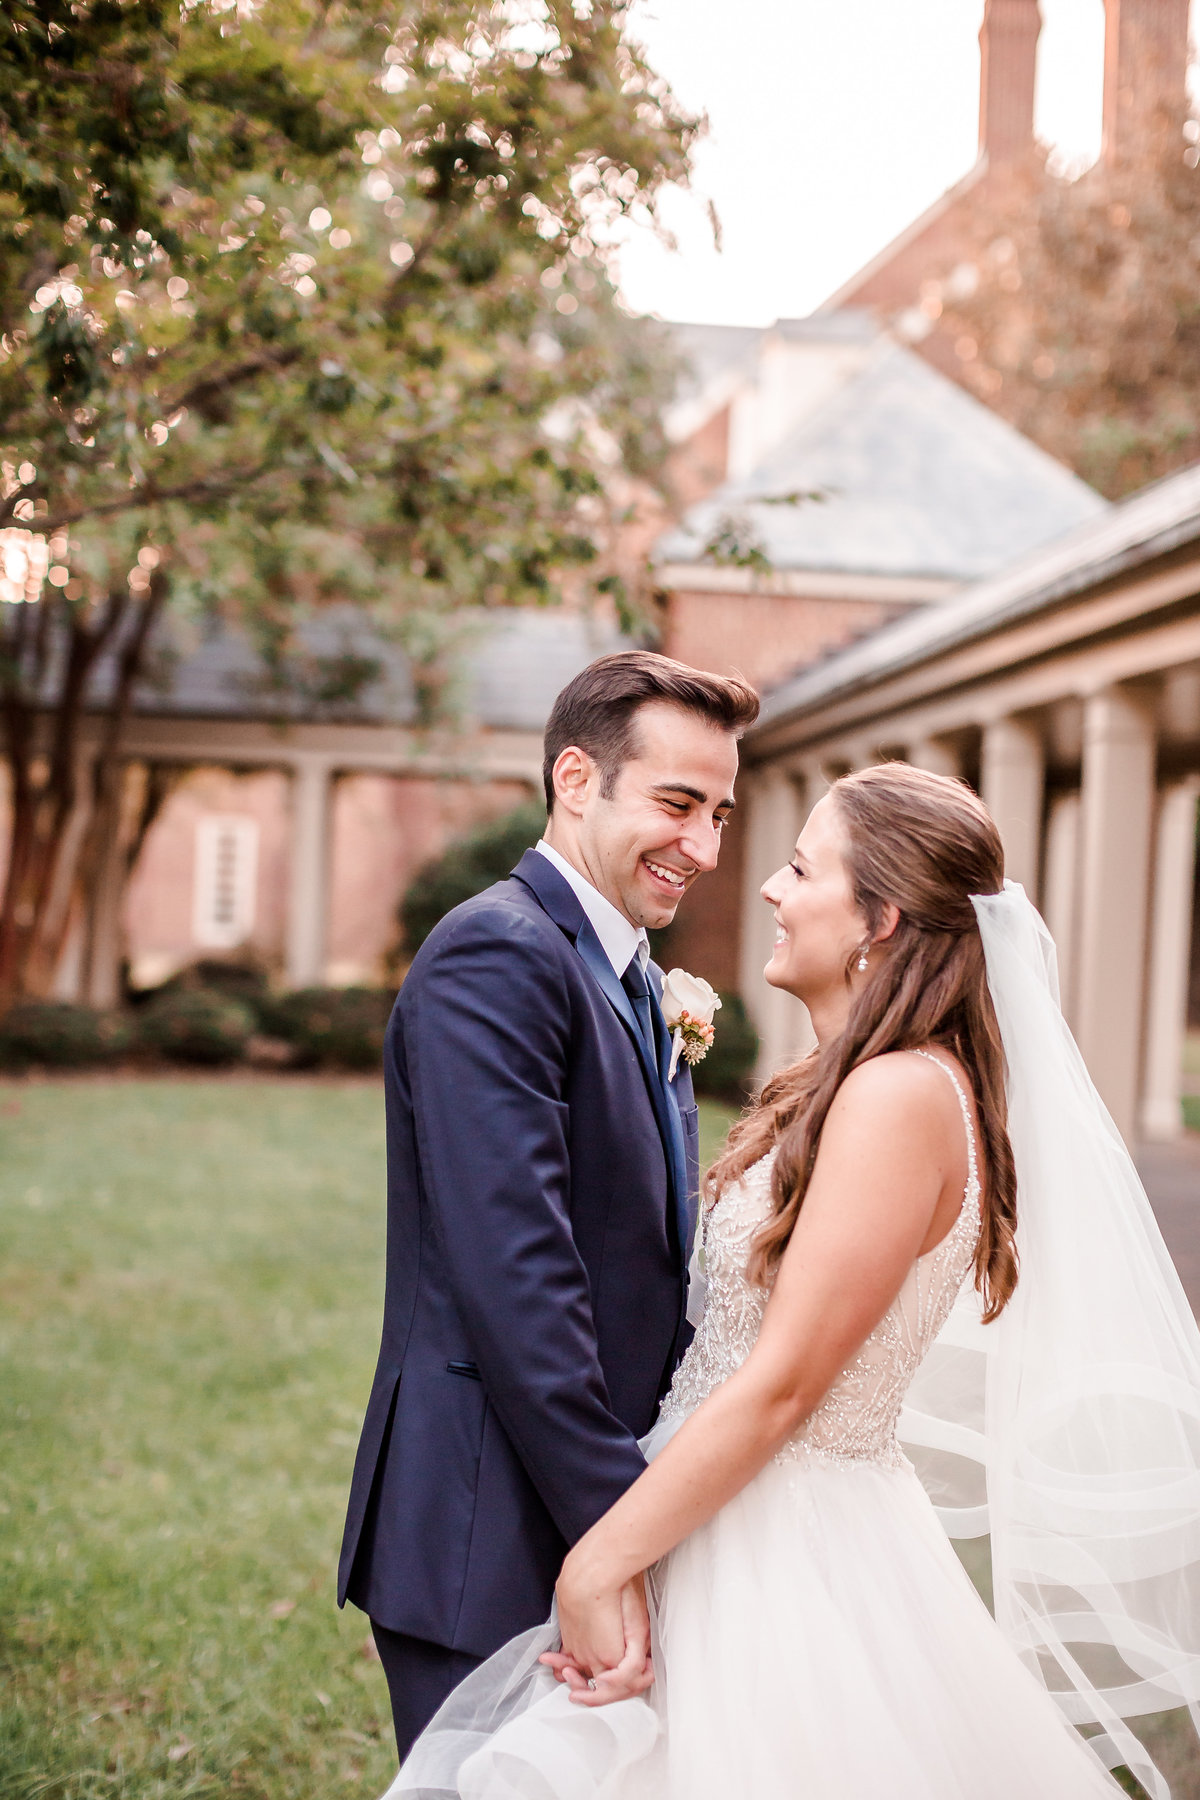 meghan lupyan hampton roads wedding photographer175